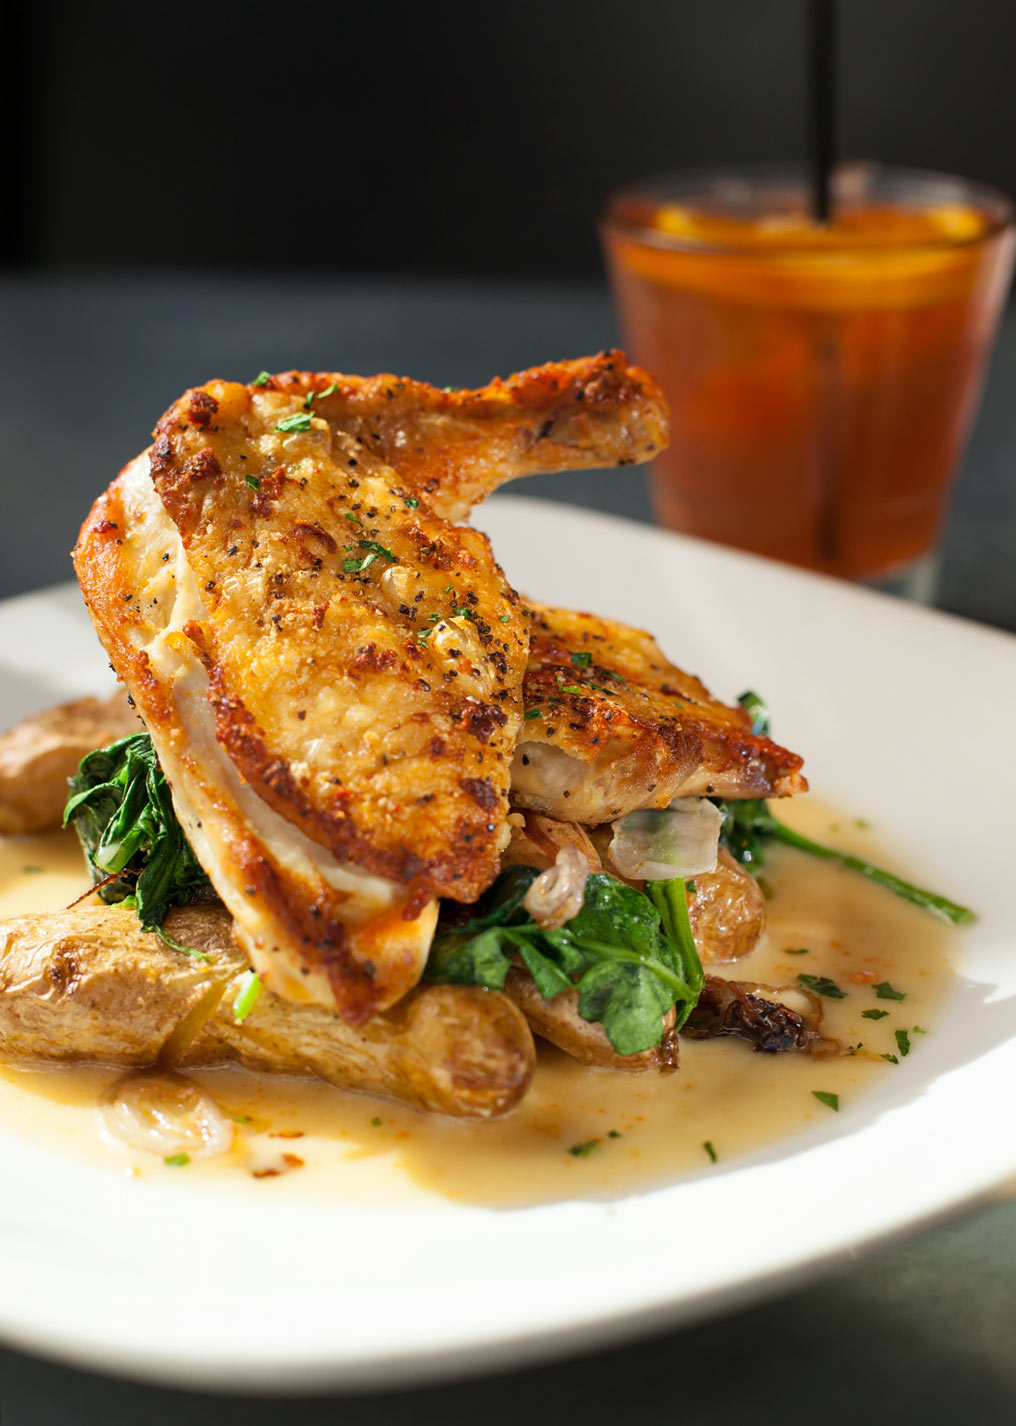 Food_Photography_Baked_chicken_potatoes-farm-fork_greens_Cocktails.jpg